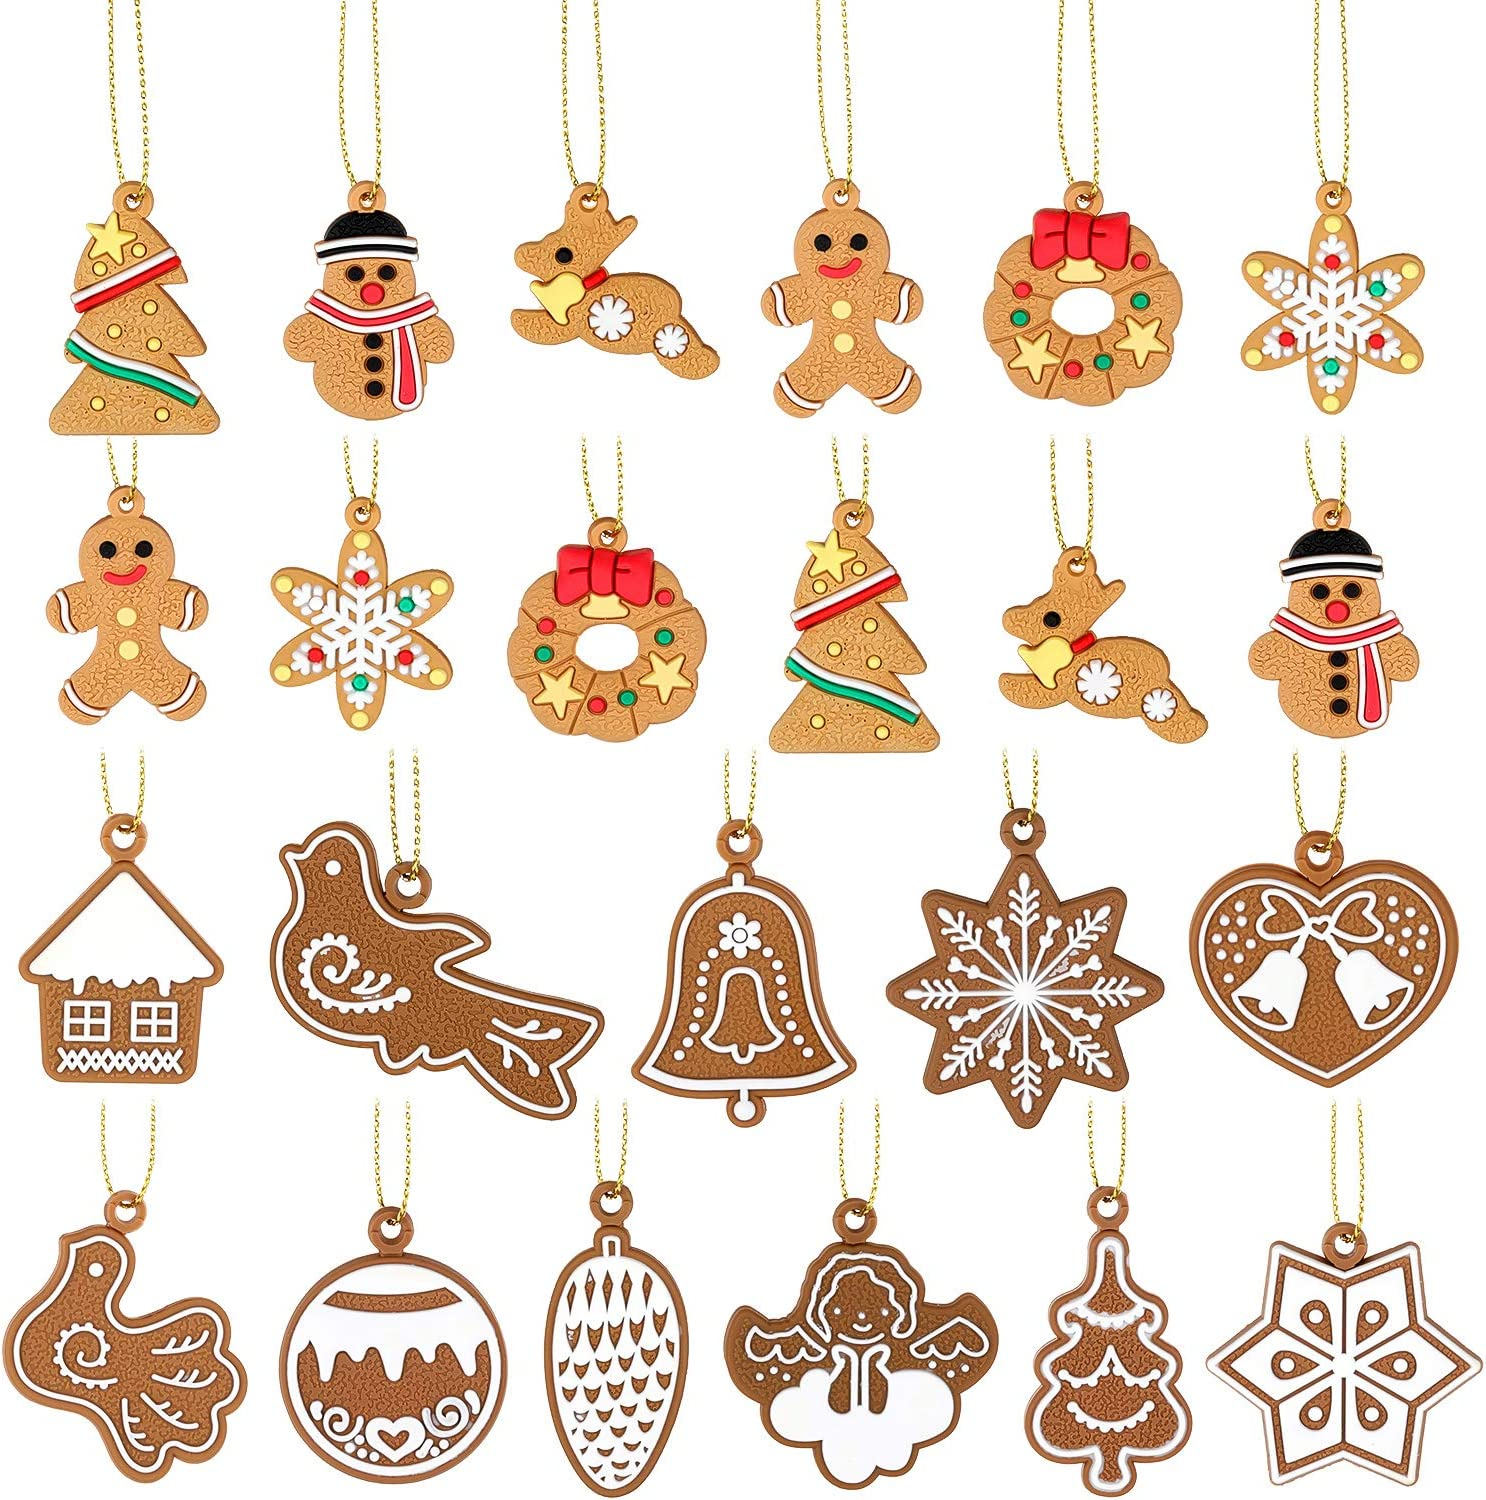 WILLBOND 23 Pieces Christmas Tree Hanging Mini Ornaments Gingerbread House Snowflake Snowman Reindeer Xmas Hanging Pendant Ornaments for Christmas Festival Decorations, 17 Styles